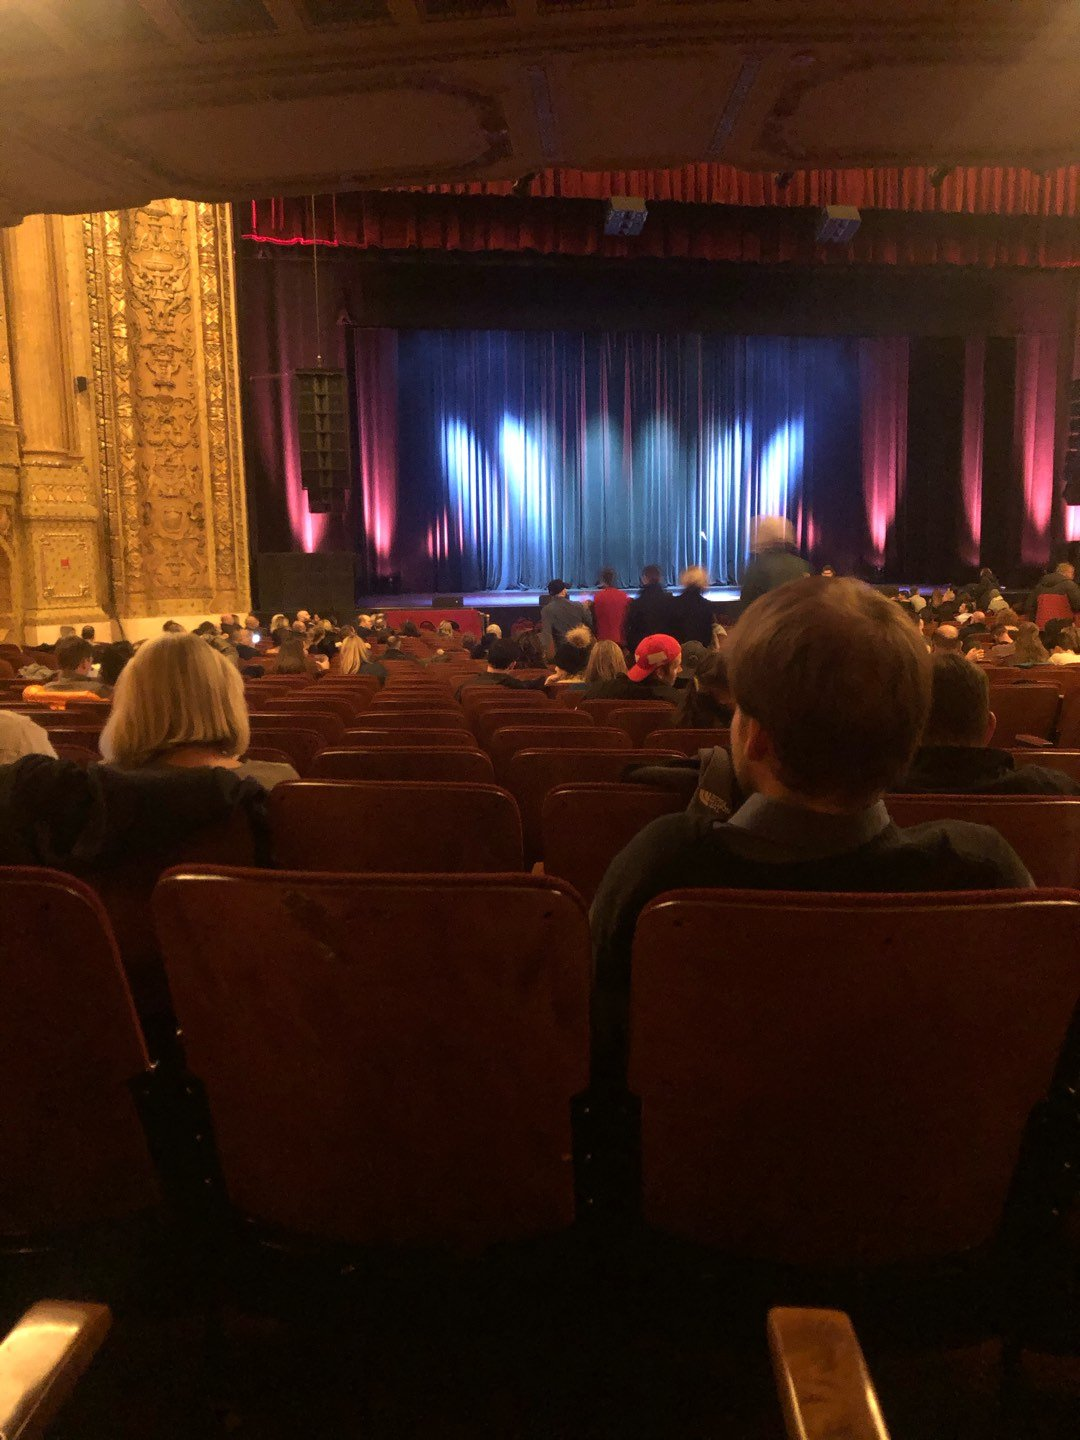 Chicago Theatre Section MNFL3L Row N Seat 307